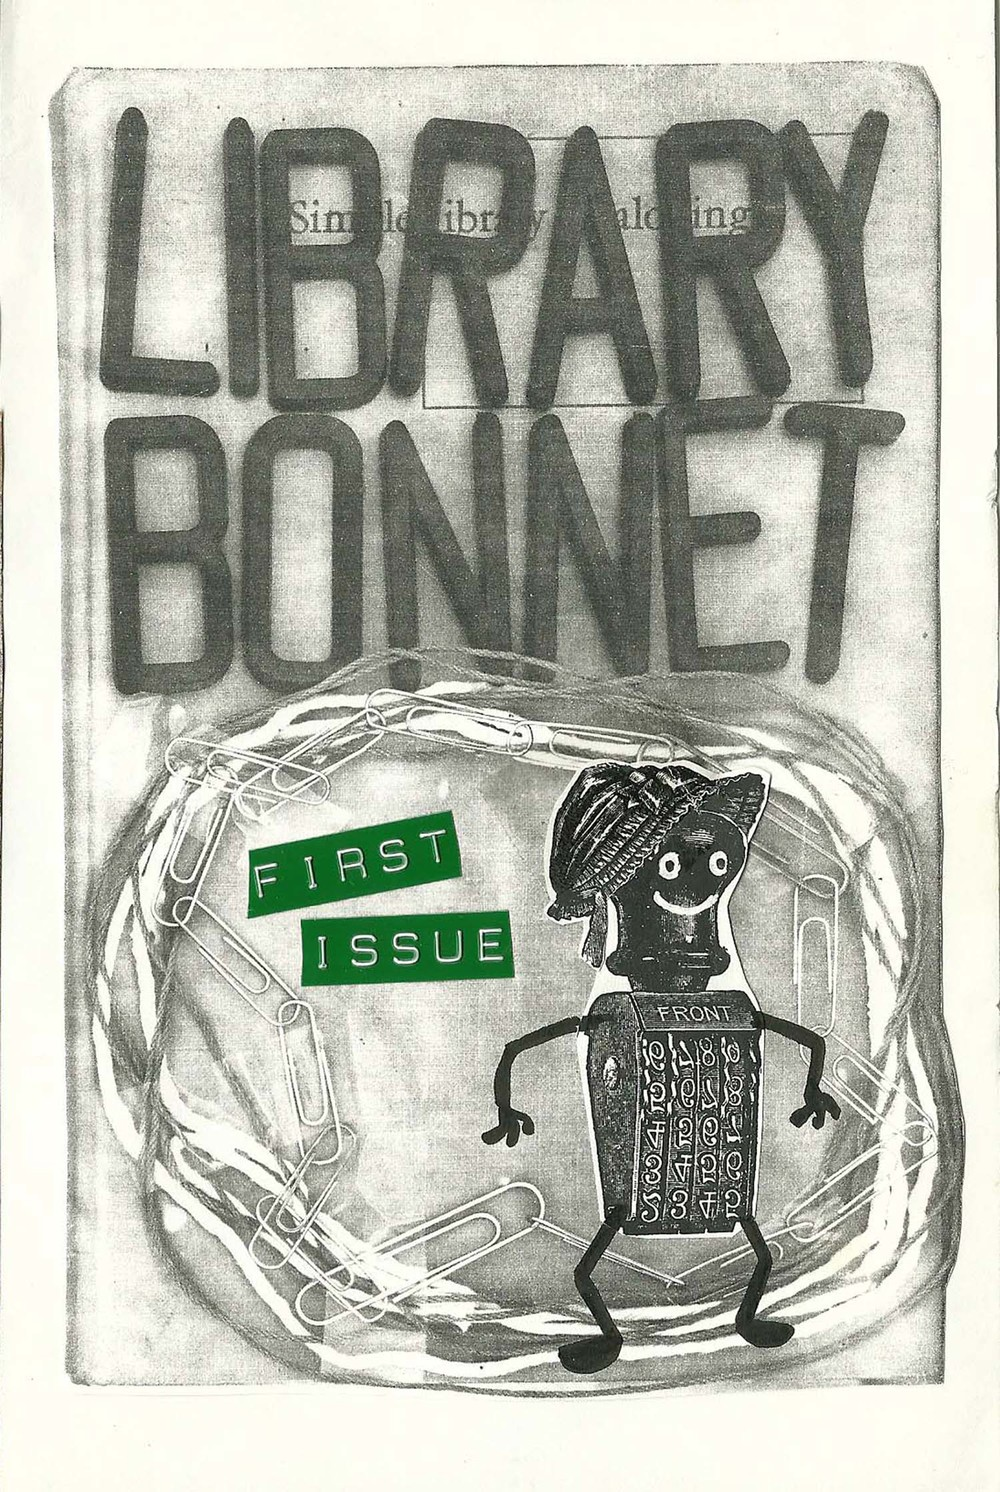 Library Bonnet #1